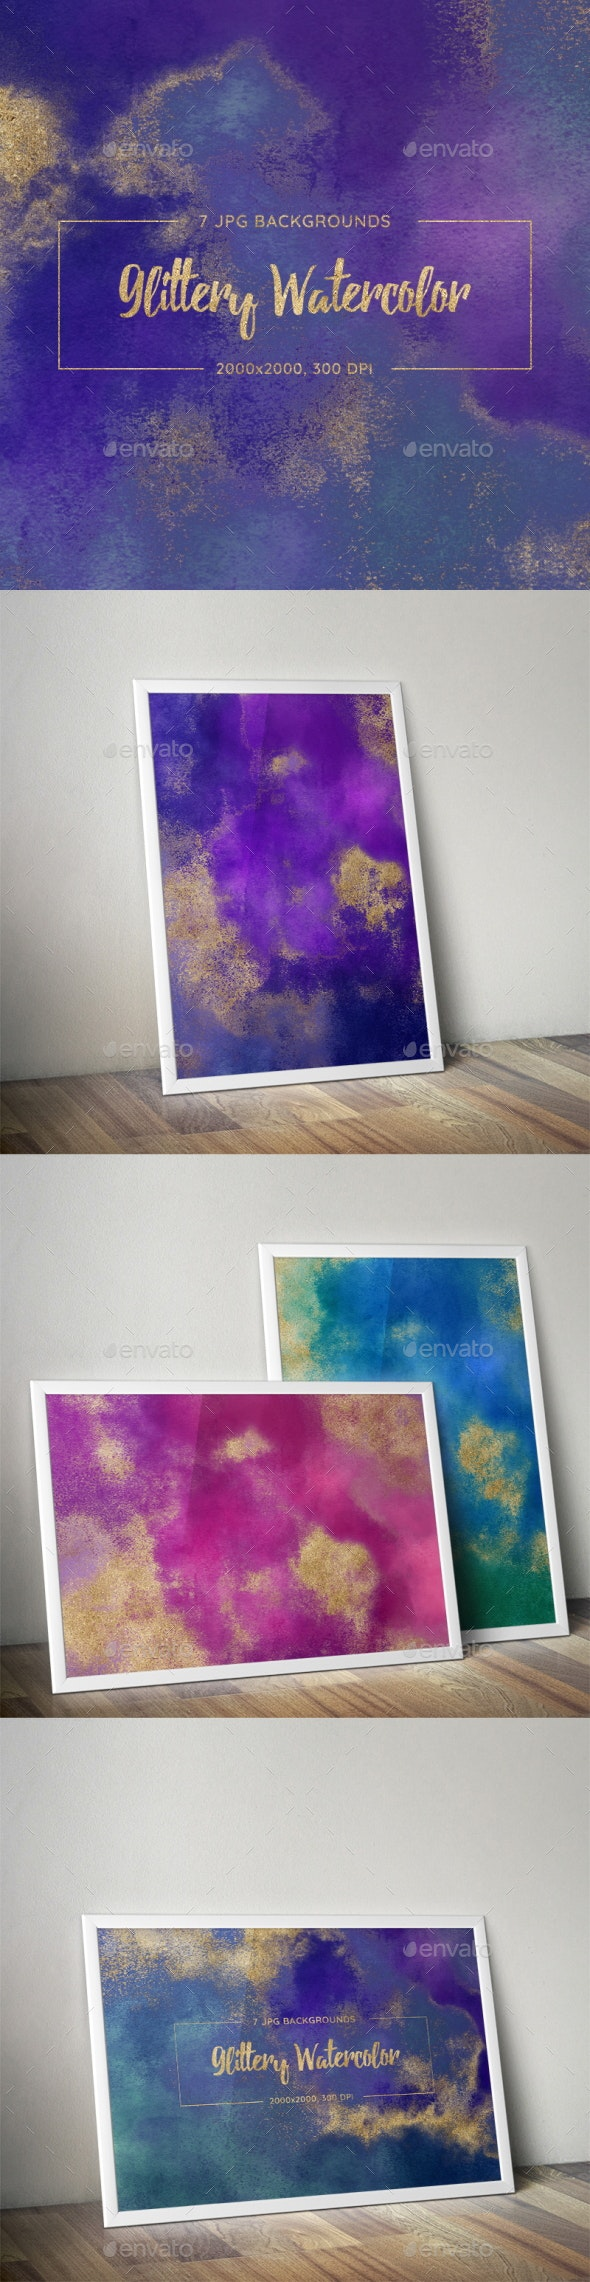 7 Glittery Watercolor Backgrounds - Abstract Backgrounds